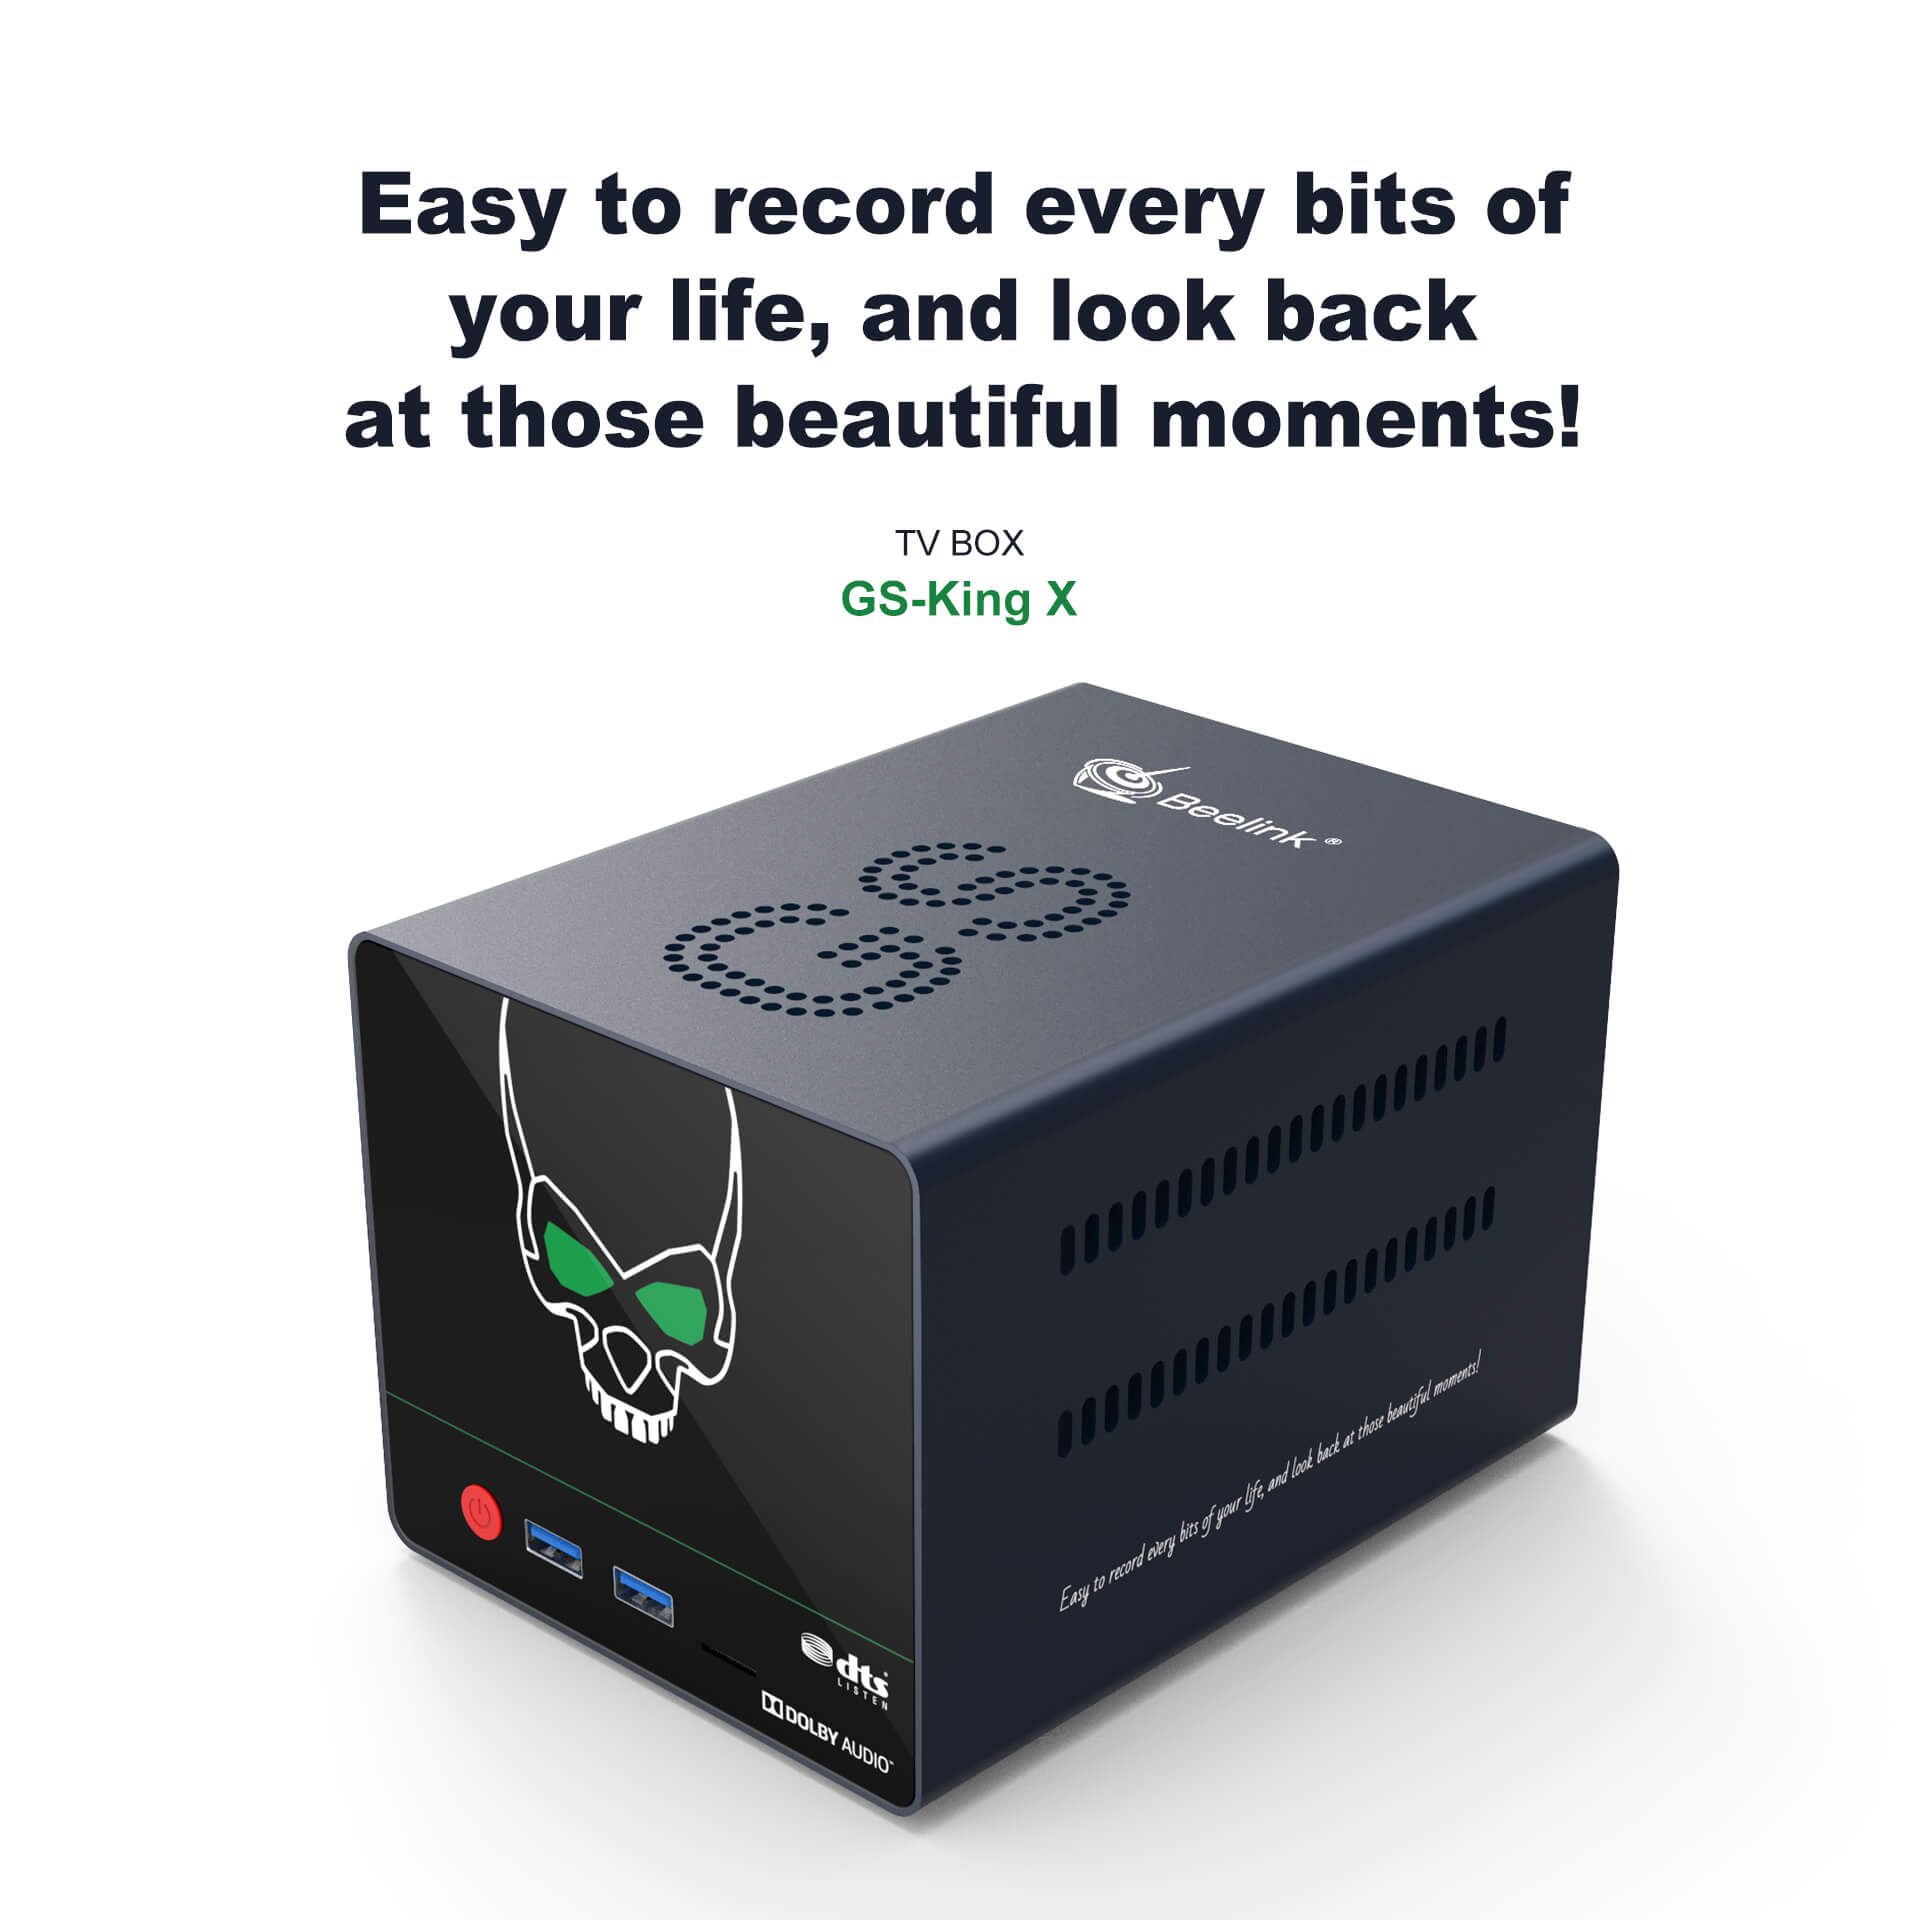 Beelink GS-King X S922X-H Android 9.0 Powerful TV Box 4/64G with NAS Dolby DTS HIFI 4K Support HDD Expansion 0